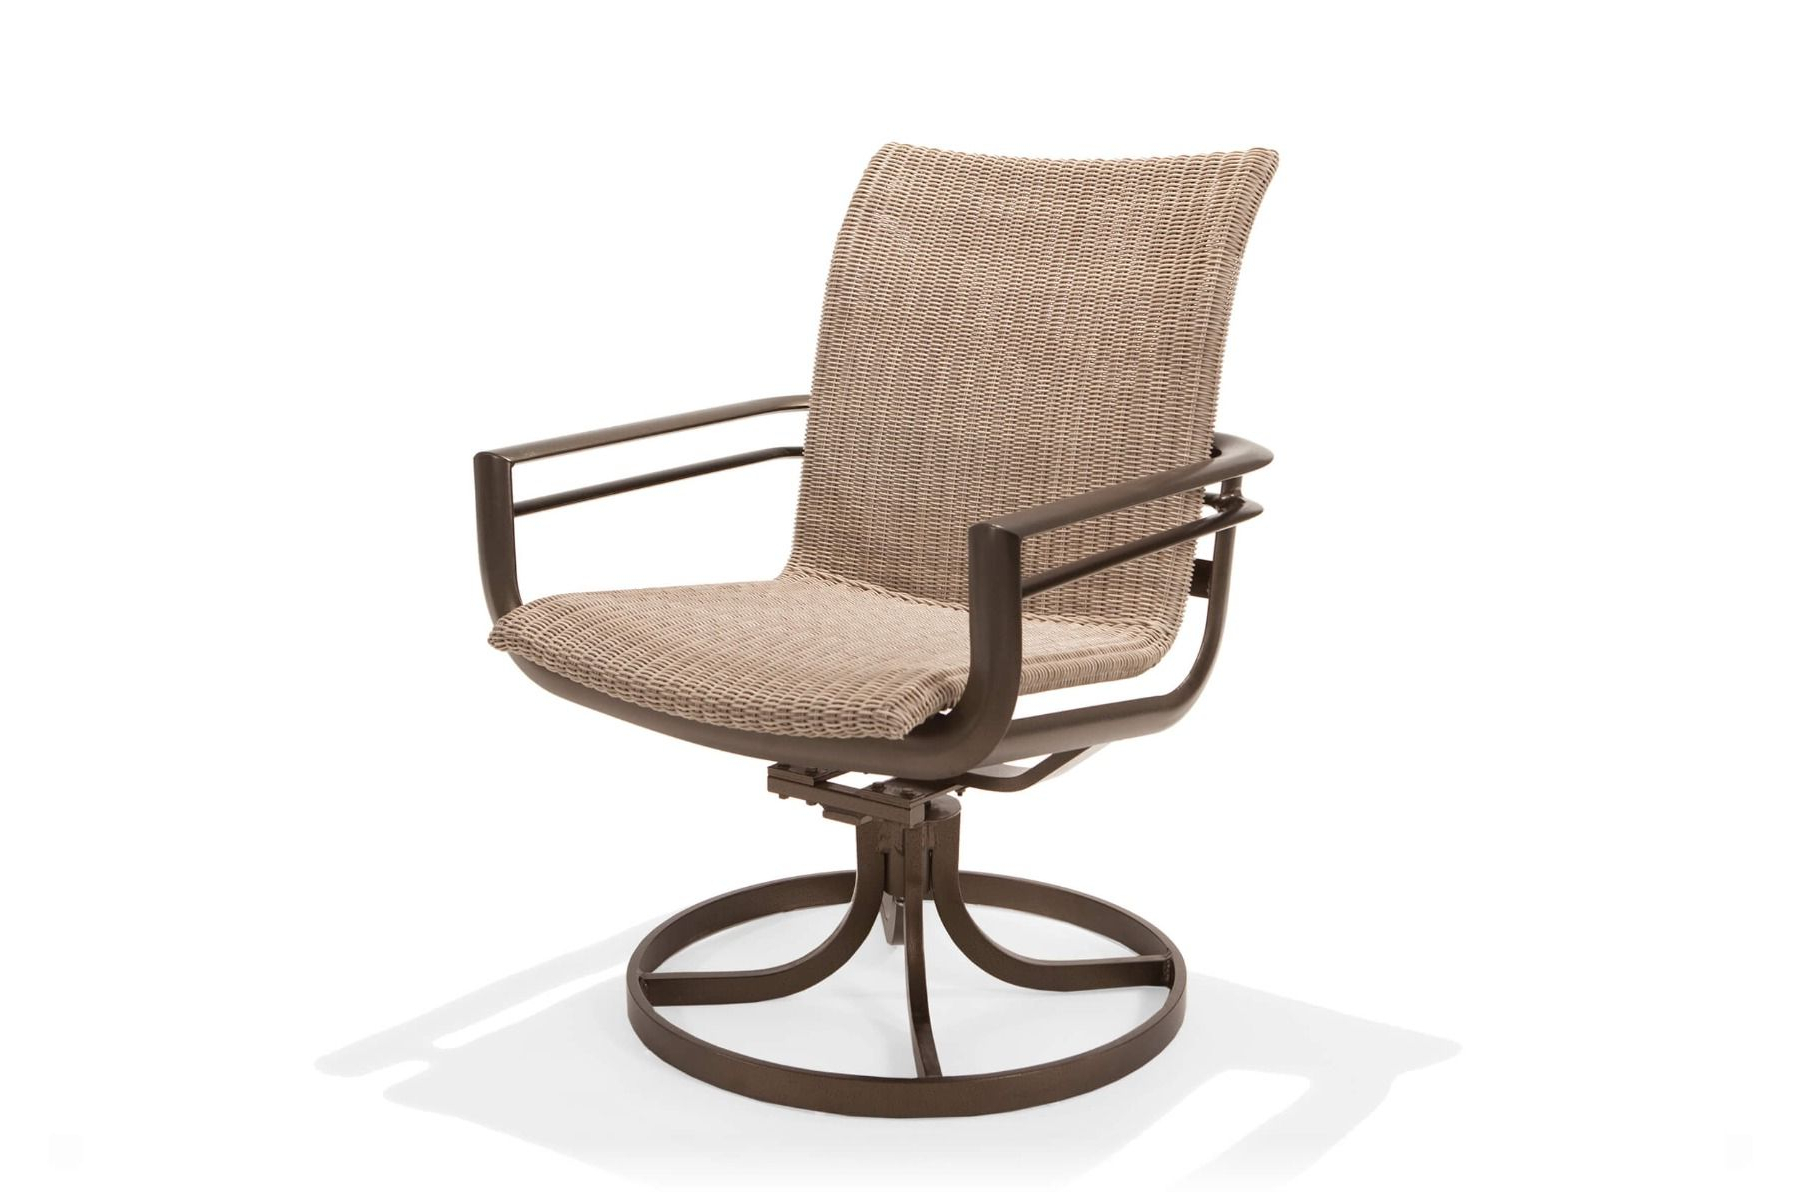 Woven High Back Swivel Chairs With Fashionable Southern Cay Woven High Back Swivel Tilt Chair (View 2 of 30)